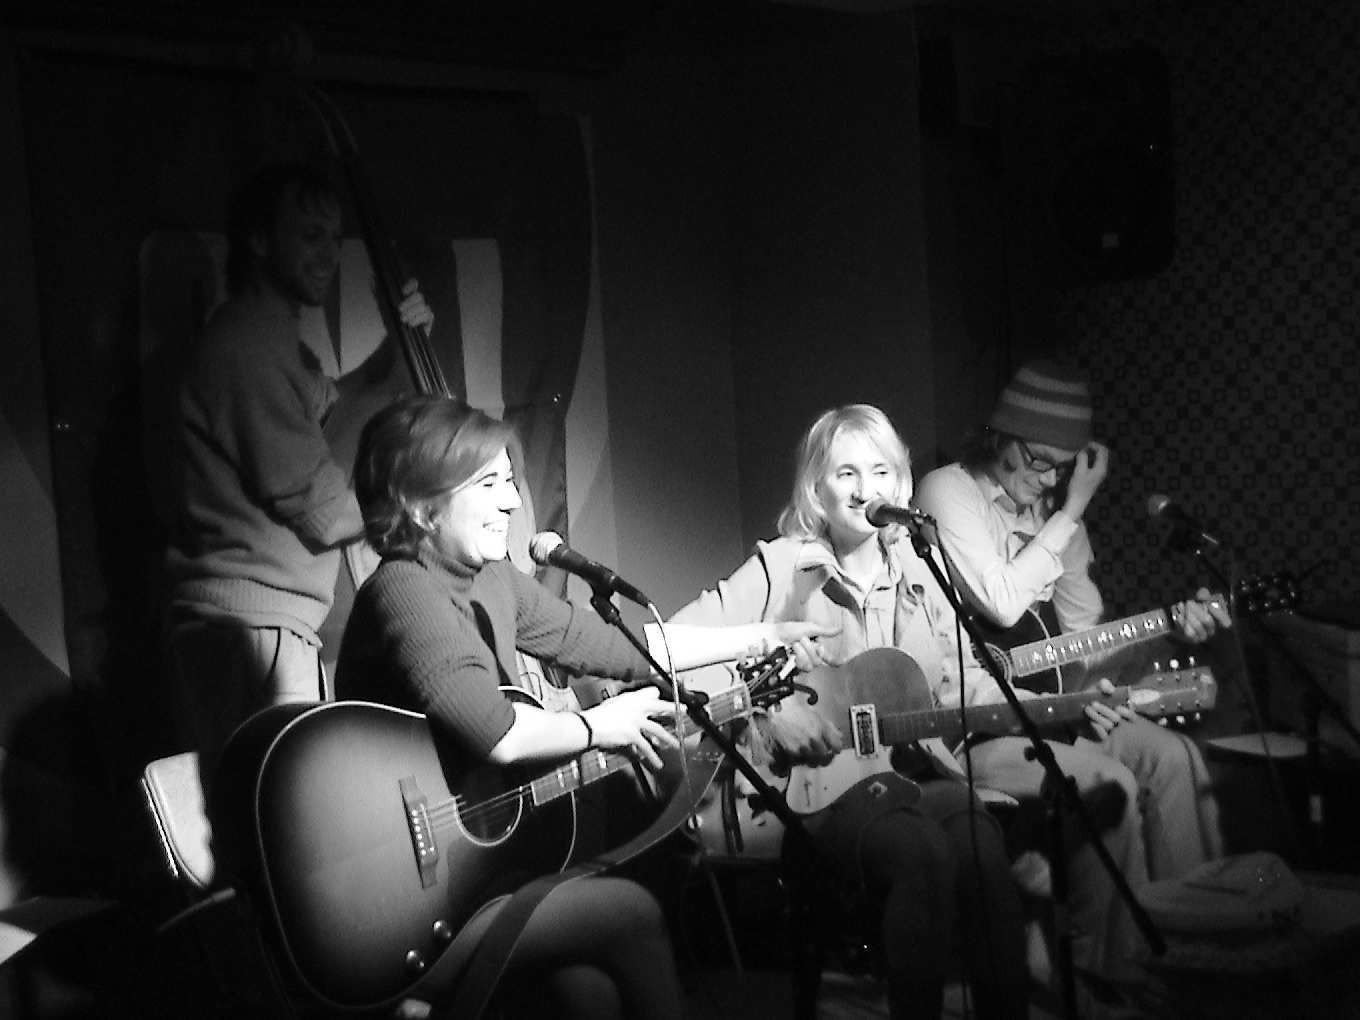 The Marykate O'Neil band